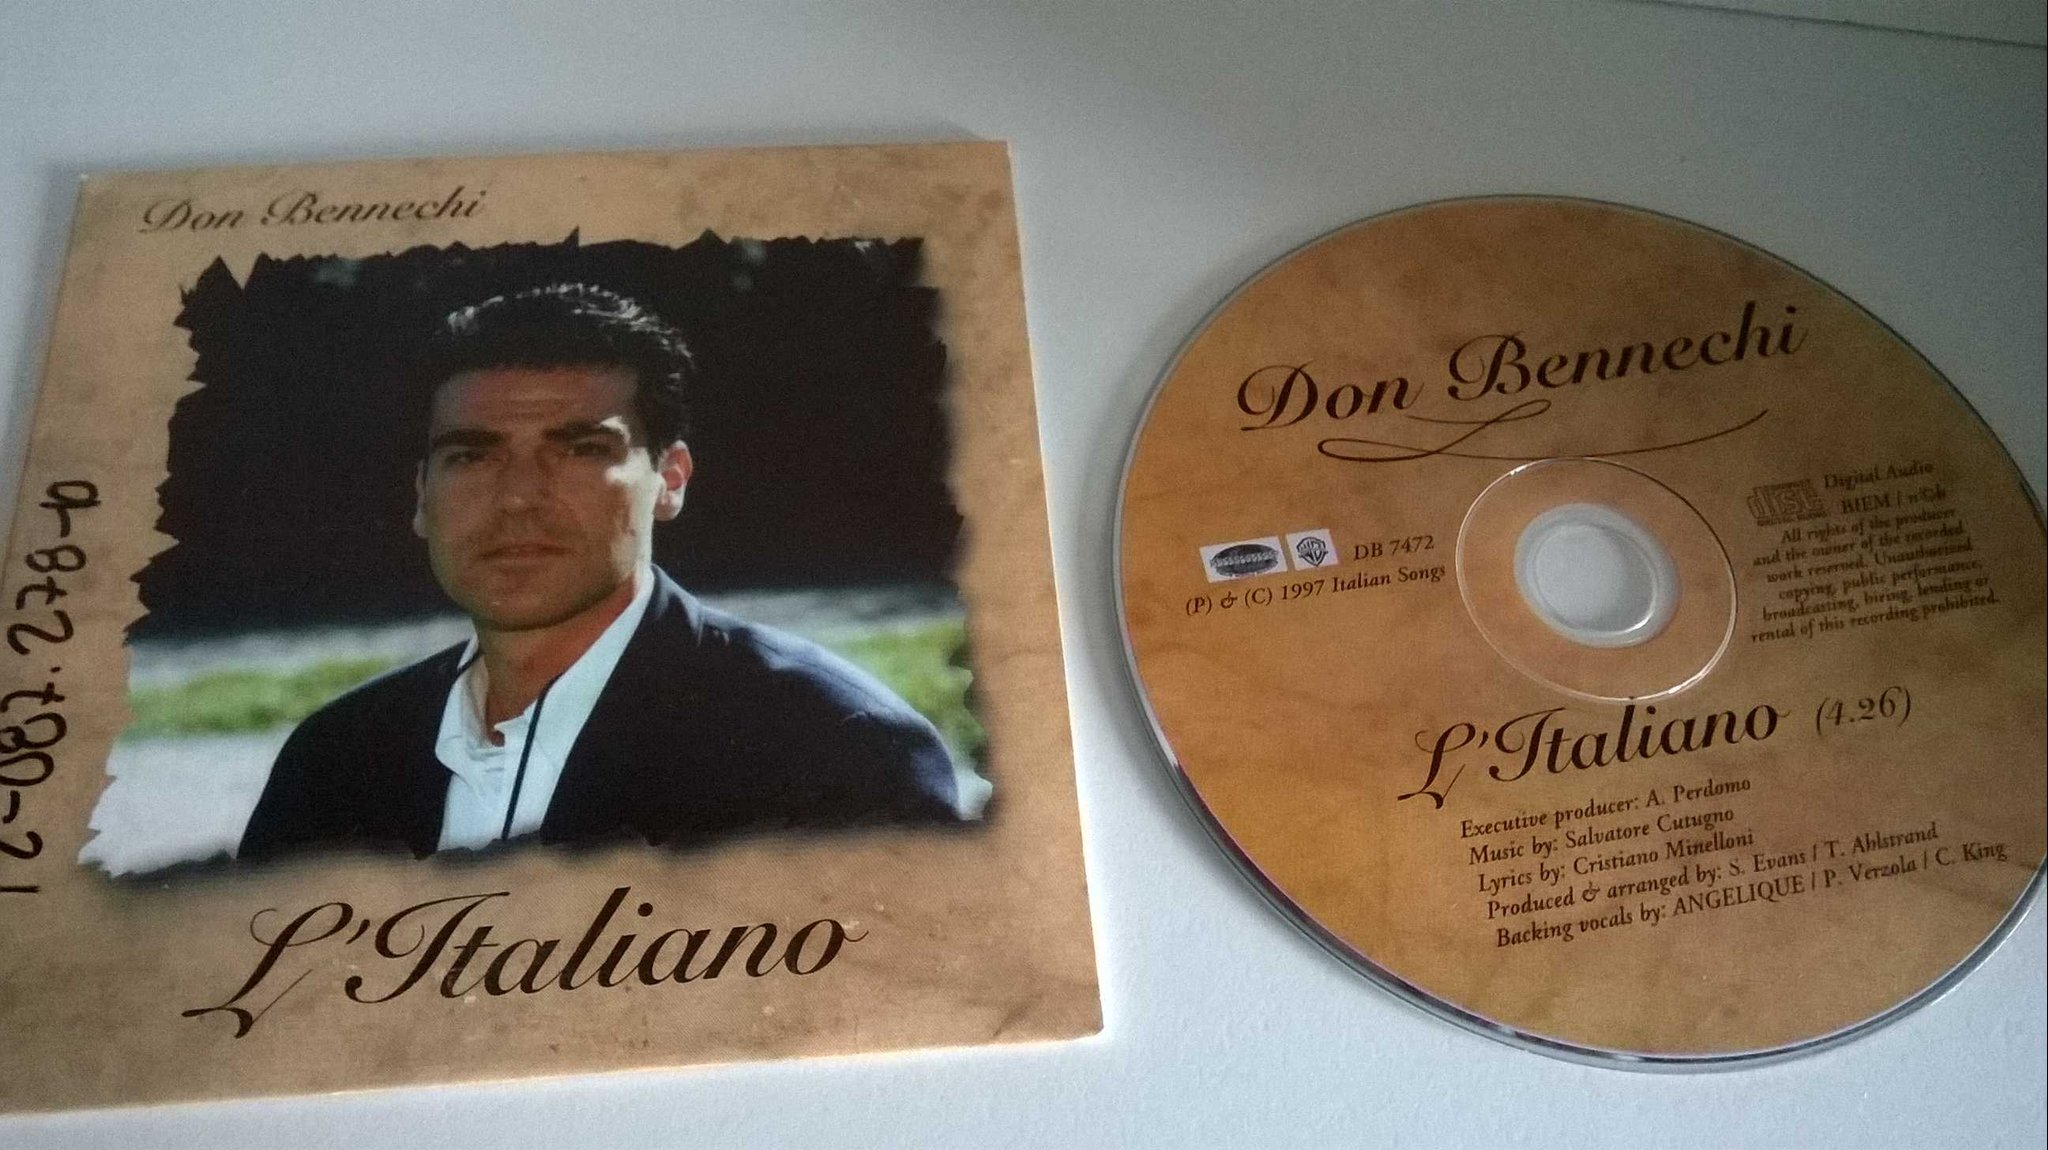 Don Bennechi - L'Italiano, single CD